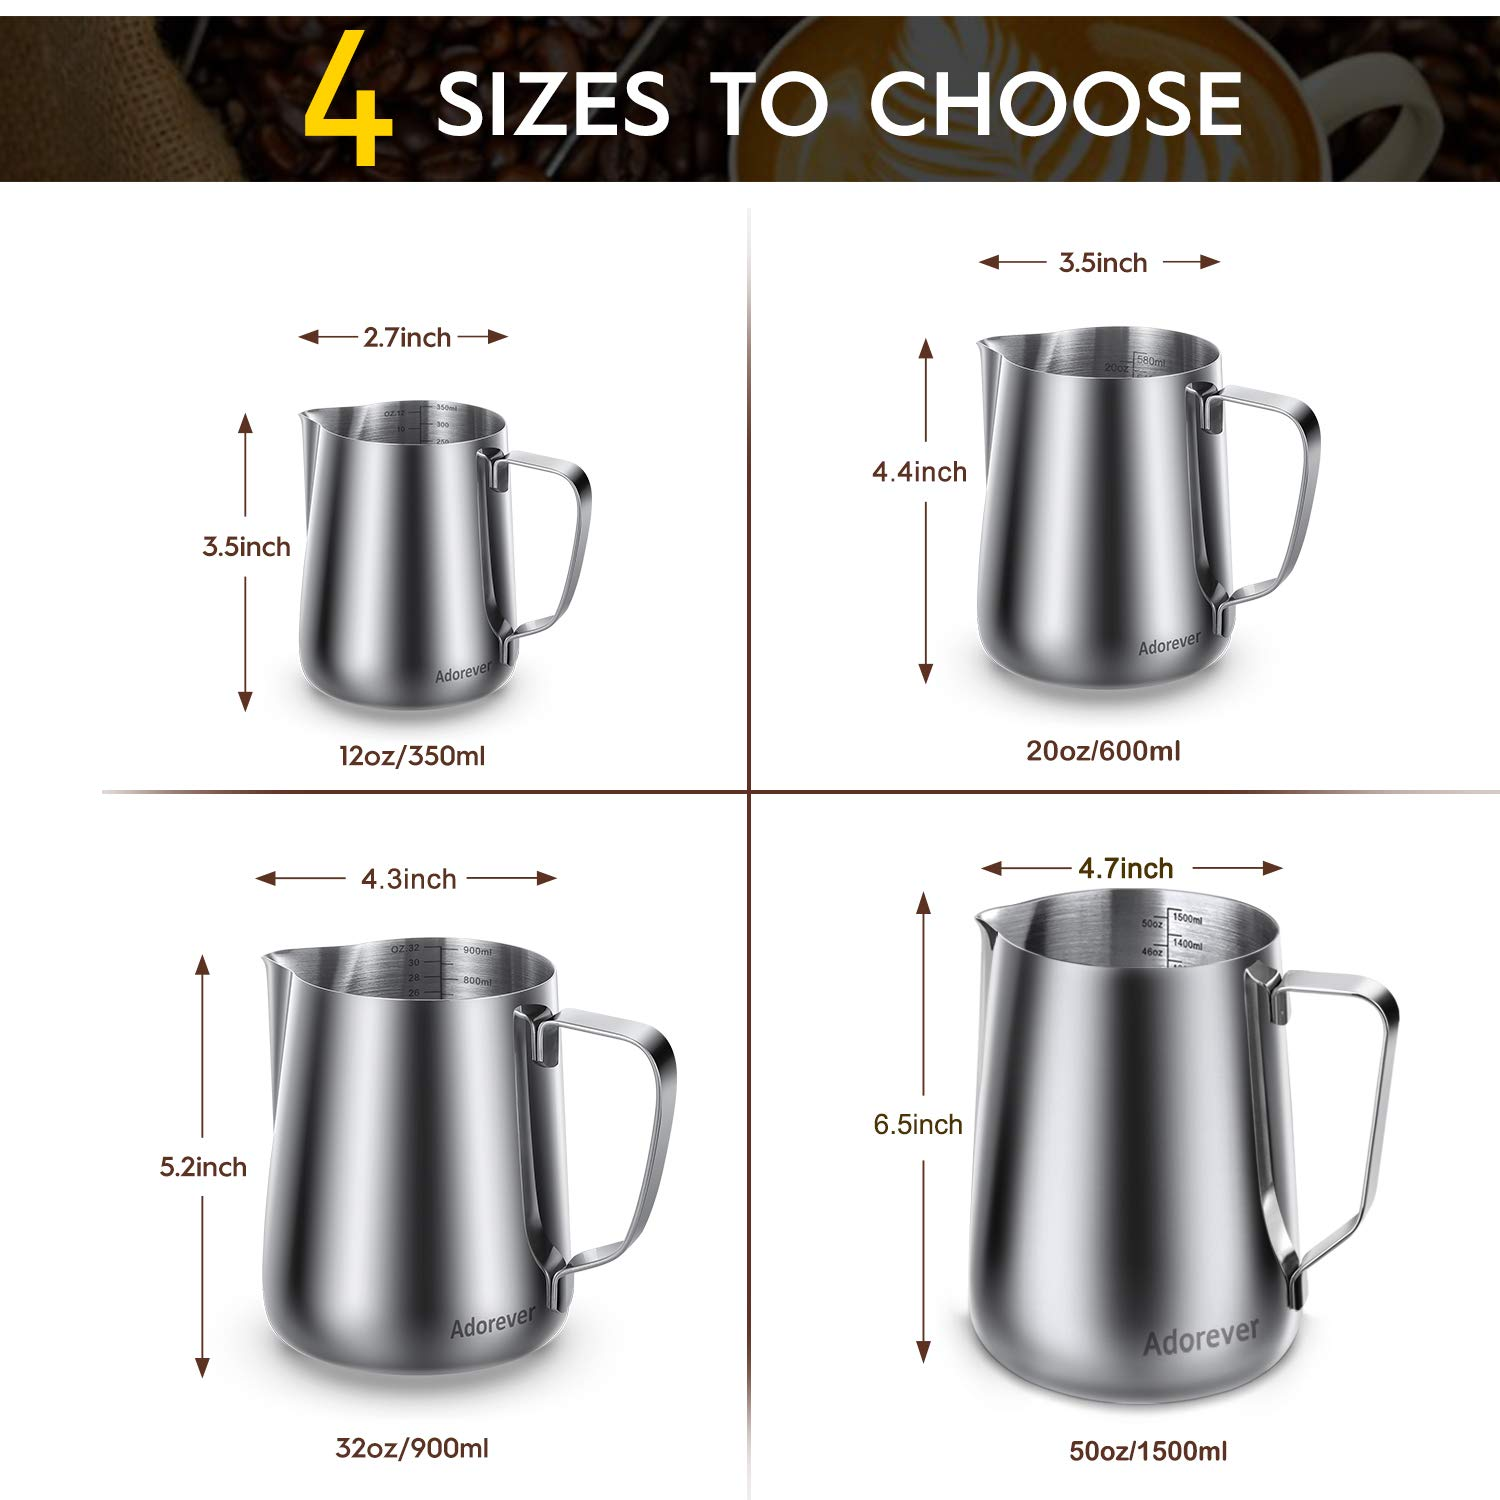 Milk Frothing Pitcher 600ml/350ml/900ml (20oz/12oz/32oz) Steaming Pitchers Stainless Steel Milk/Coffee/Cappuccino/Latte Art Barista Steam Pitchers Milk Jug Cup with Decorating Art Pen, Latte Arts by Adorever (Image #2)